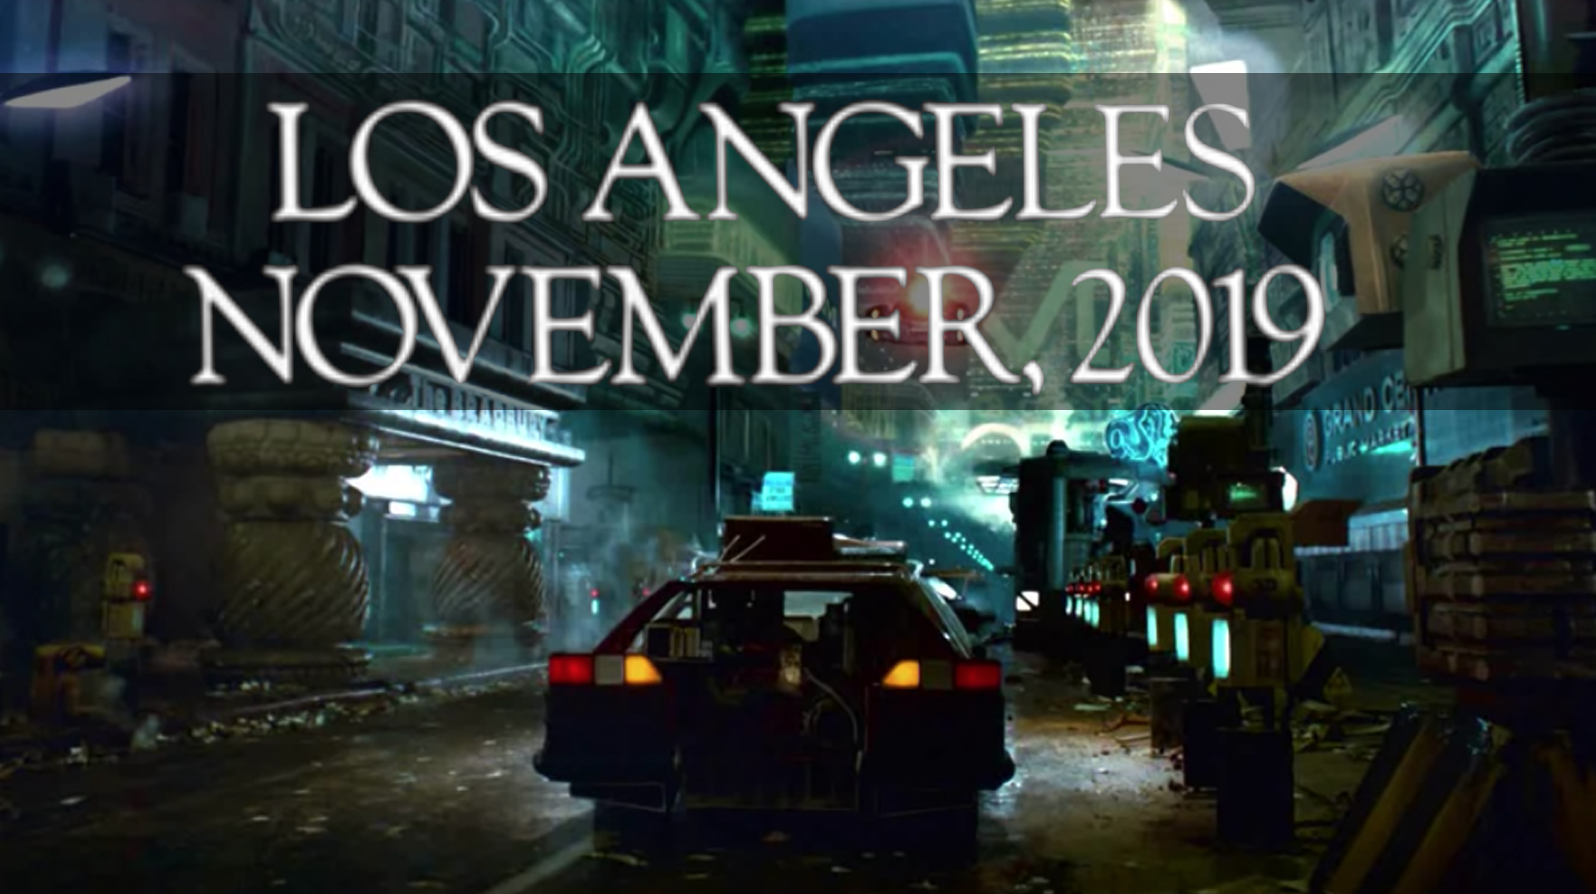 There's One Car From Blade Runner's November 2019 That Could Exist In Our November 2019